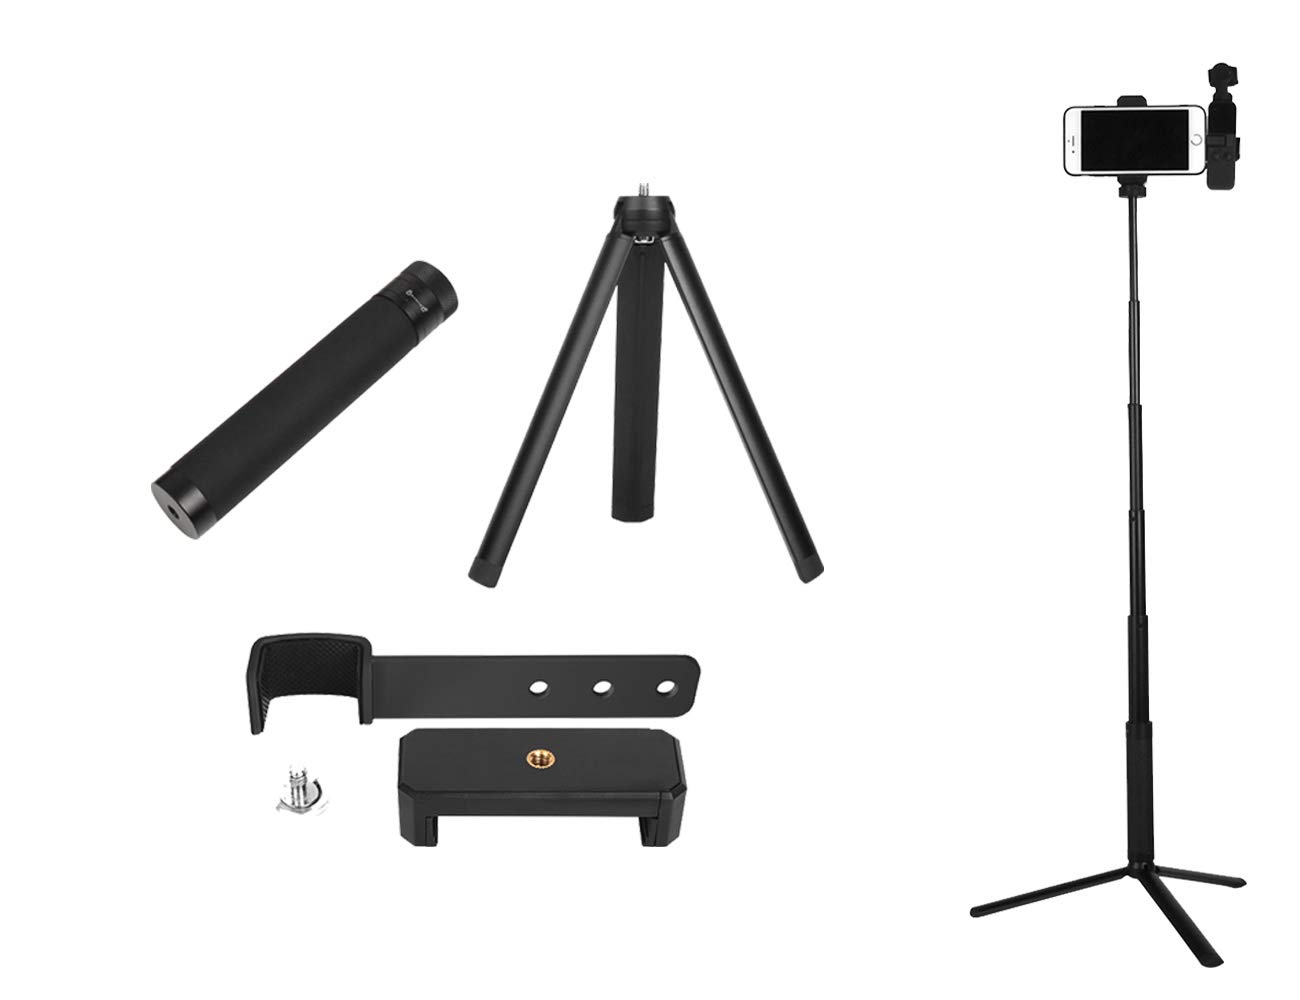 Tineer Smart Phone Stand Holder Bracket + Tripod Mount + Selfie Stick Extension Rod Set Accessories for DJI Osmo Pocket Handheld Gimbal Camera by Tineer